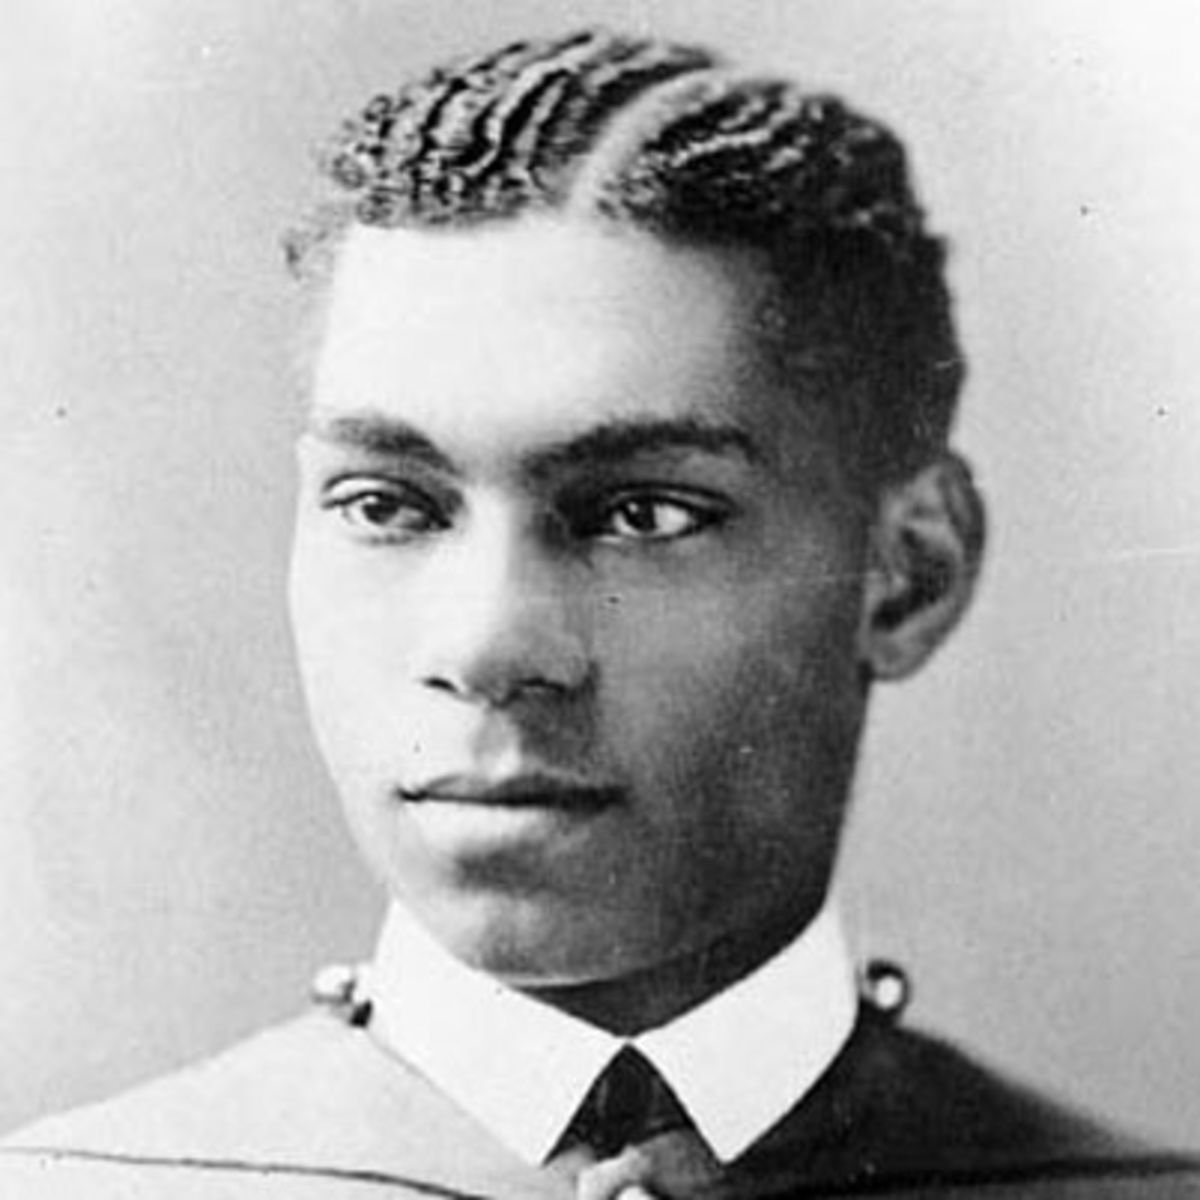 Today-1877: Henry Ossian Flipper, became the first African American to graduate from @WestPoint_USMA #history https://t.co/gMQKUQ8OCR